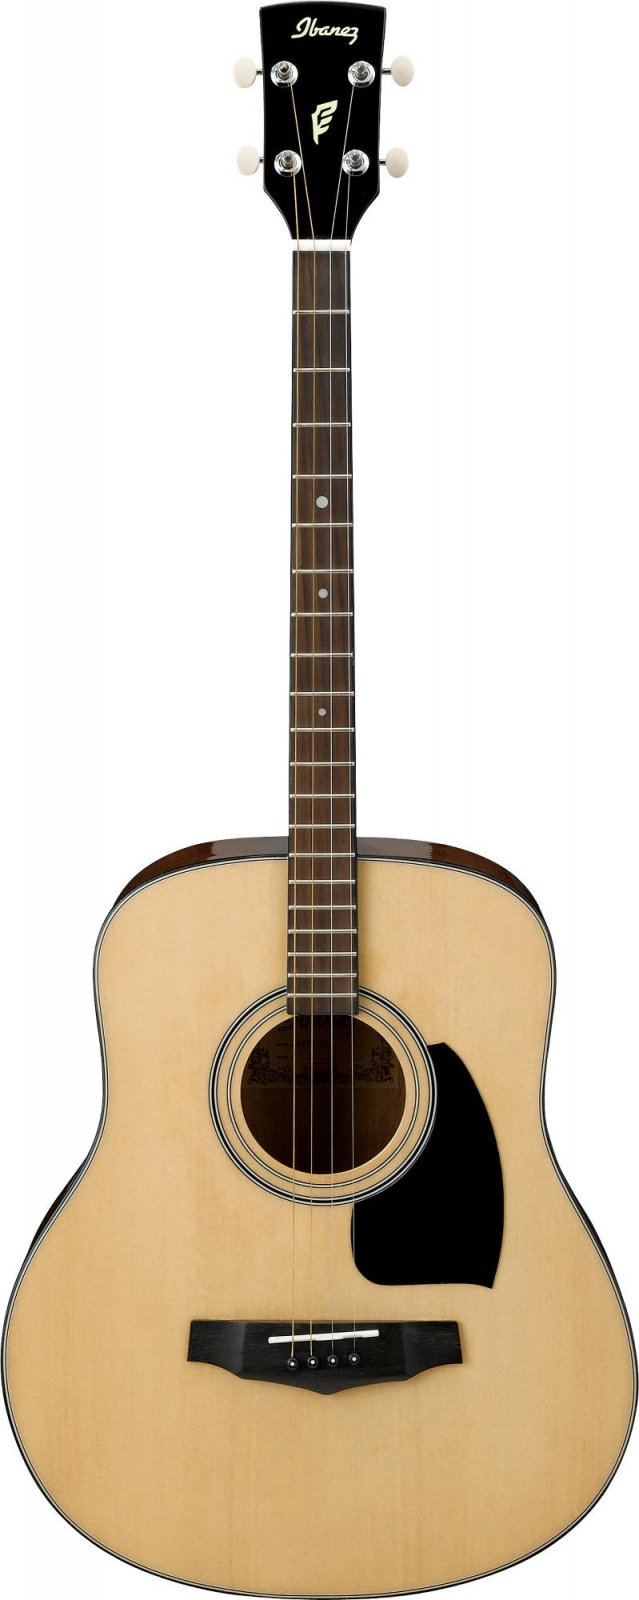 Ibanez PFT2NT Performance Series Tenor Acoustic Guitar - Natural